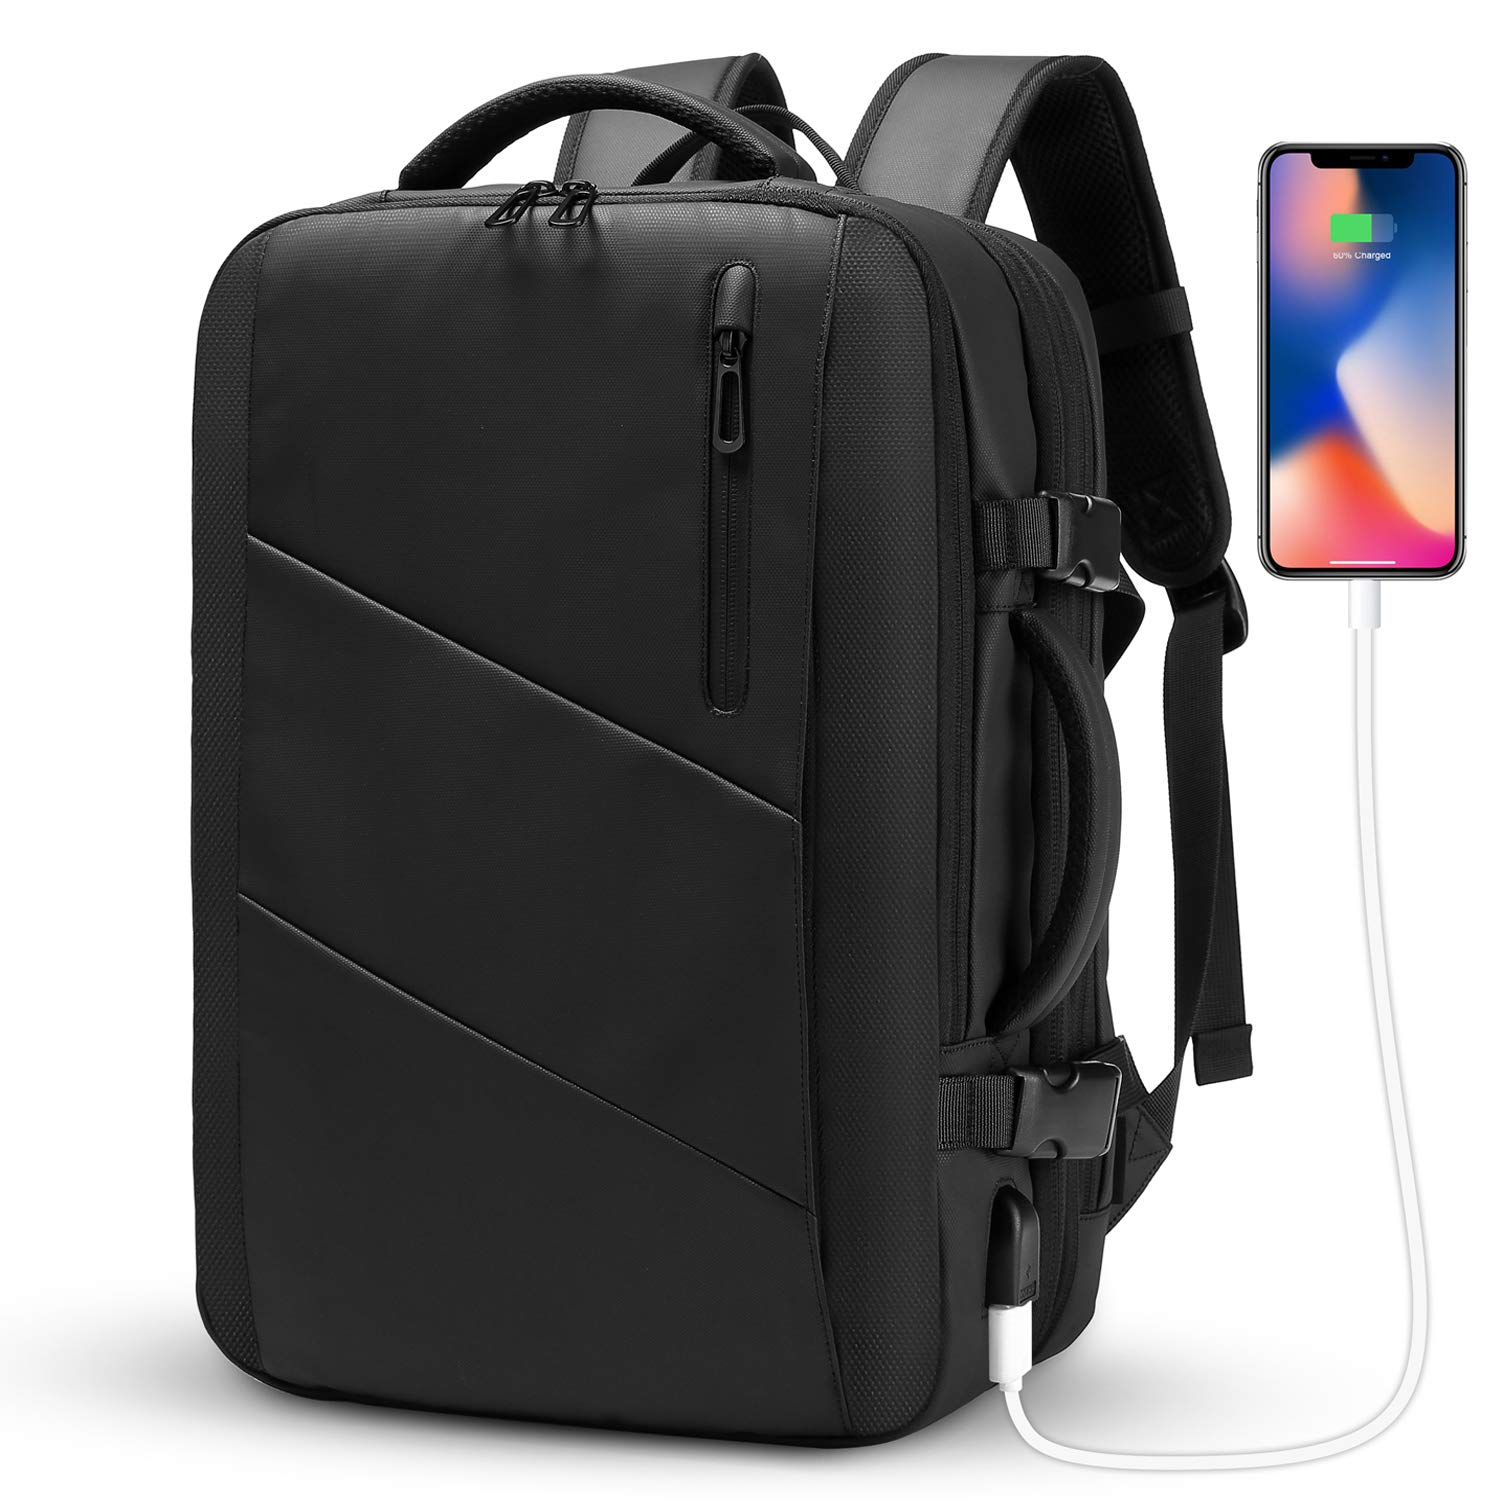 Travel Backpack,WUAYUR 15.6inch Anti Theft Laptop Backpack with USB Charging Port,40L Flight Approved Carry On Luggage Backpack for Travel/Business/College/School/Men/Women(Black) by wuayur